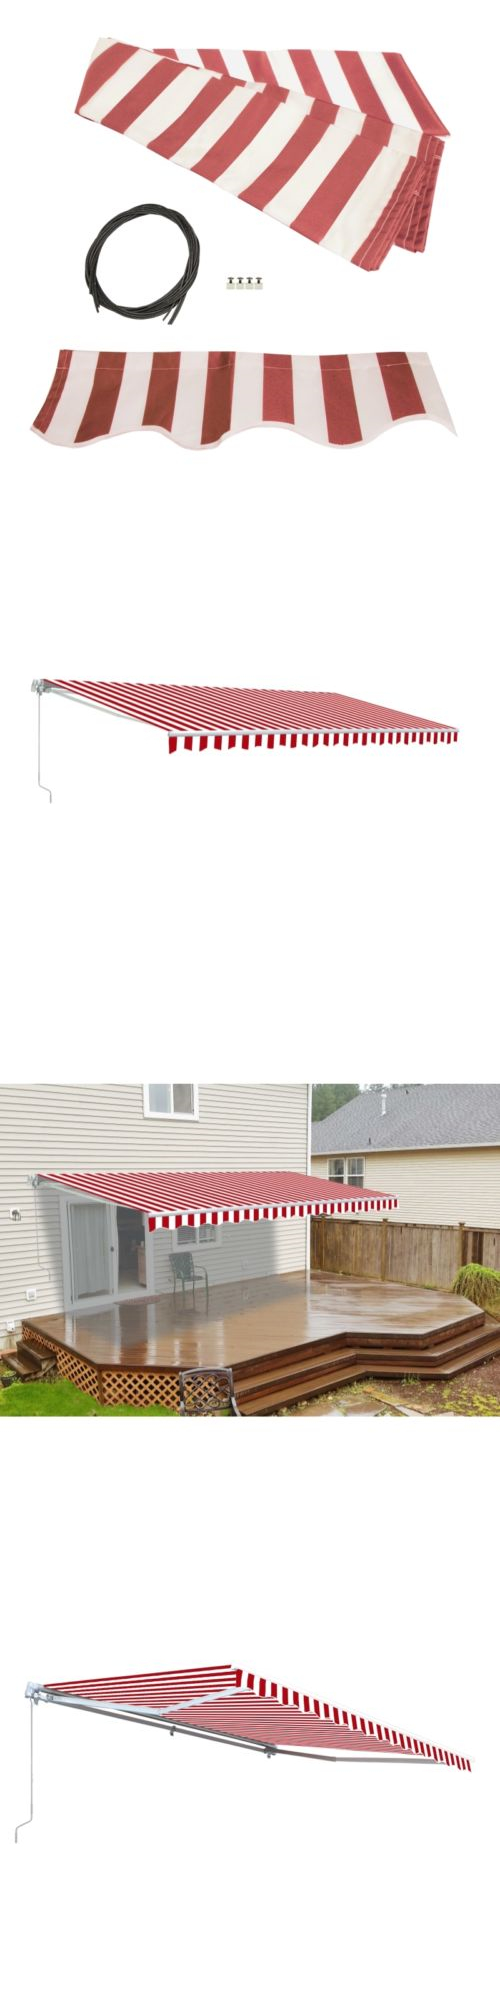 Awnings And Canopies 180992 Aleko Fabric Replacement For 12X10 Ft Retractable Awning Red White